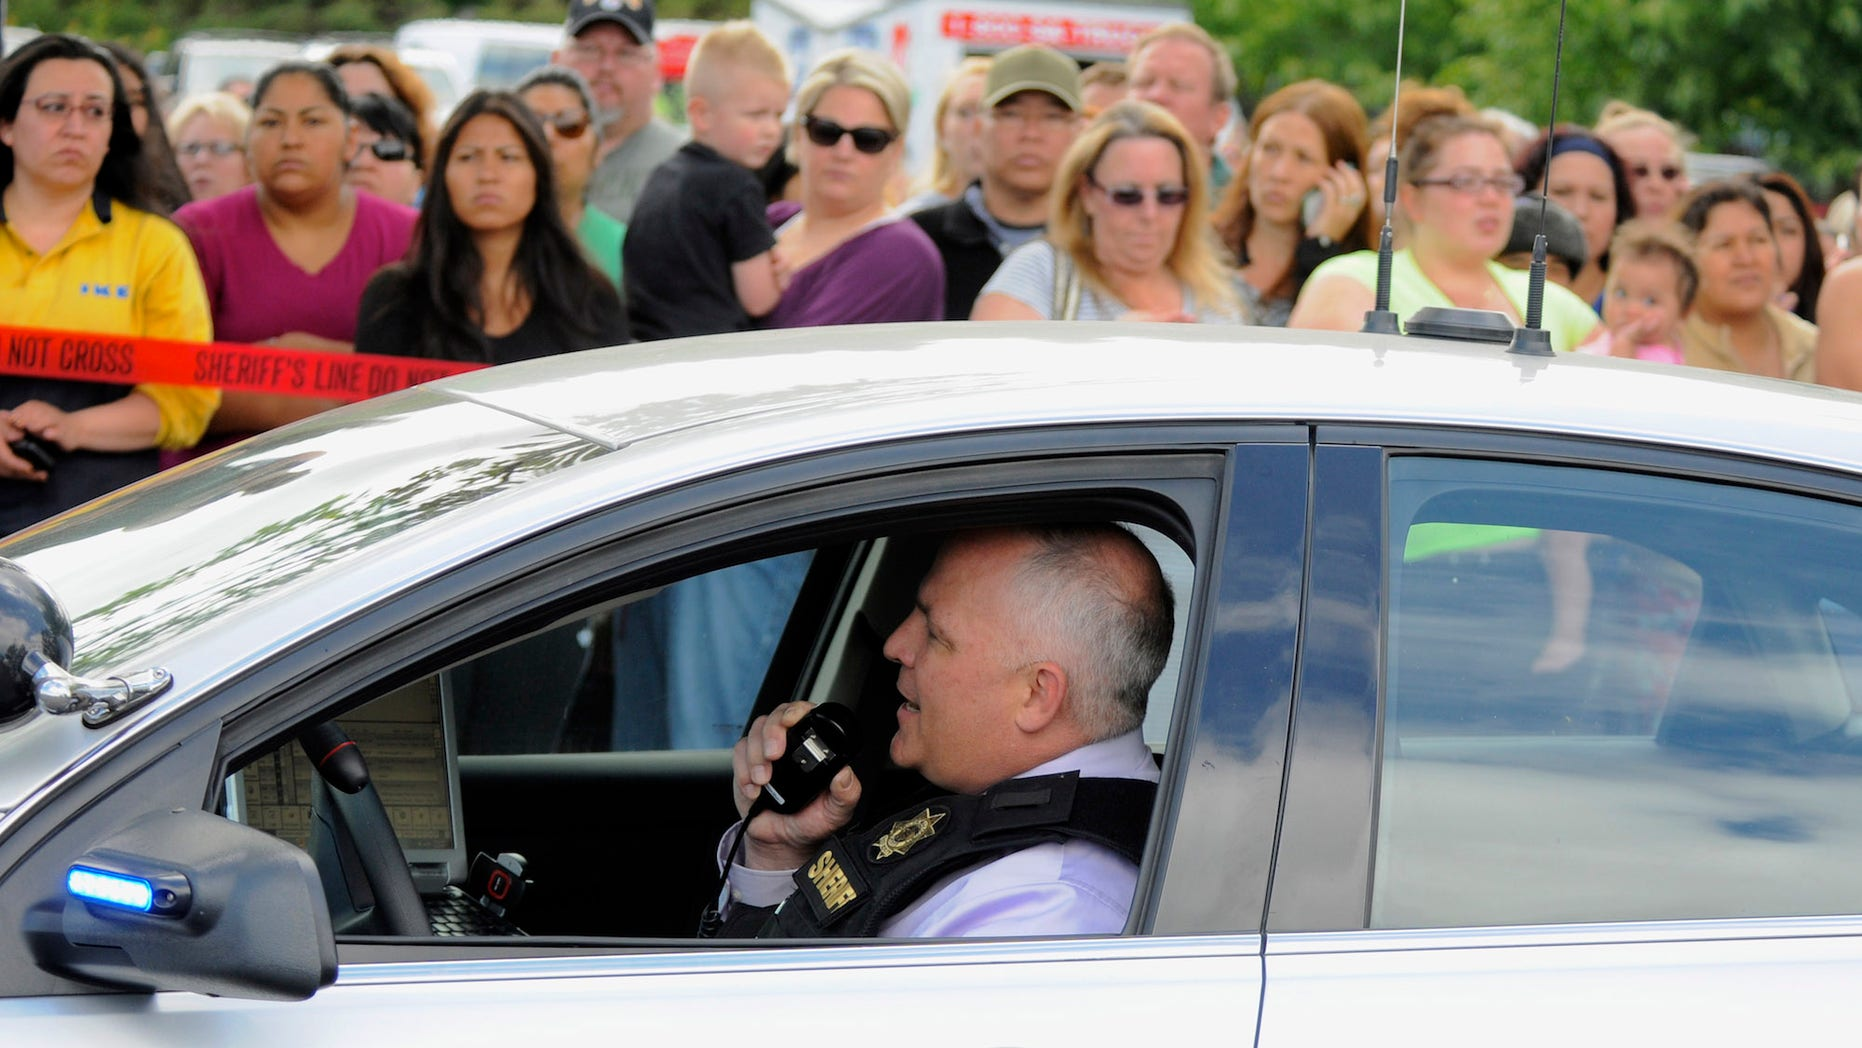 In this June 10, 2014, file photo, a sheriff's deputy talks on his radio as parents wait to be reunited with their children at a shopping center parking lot in Wood Village, Ore., after a shooting at Reynolds High School in Troutdale, Ore.